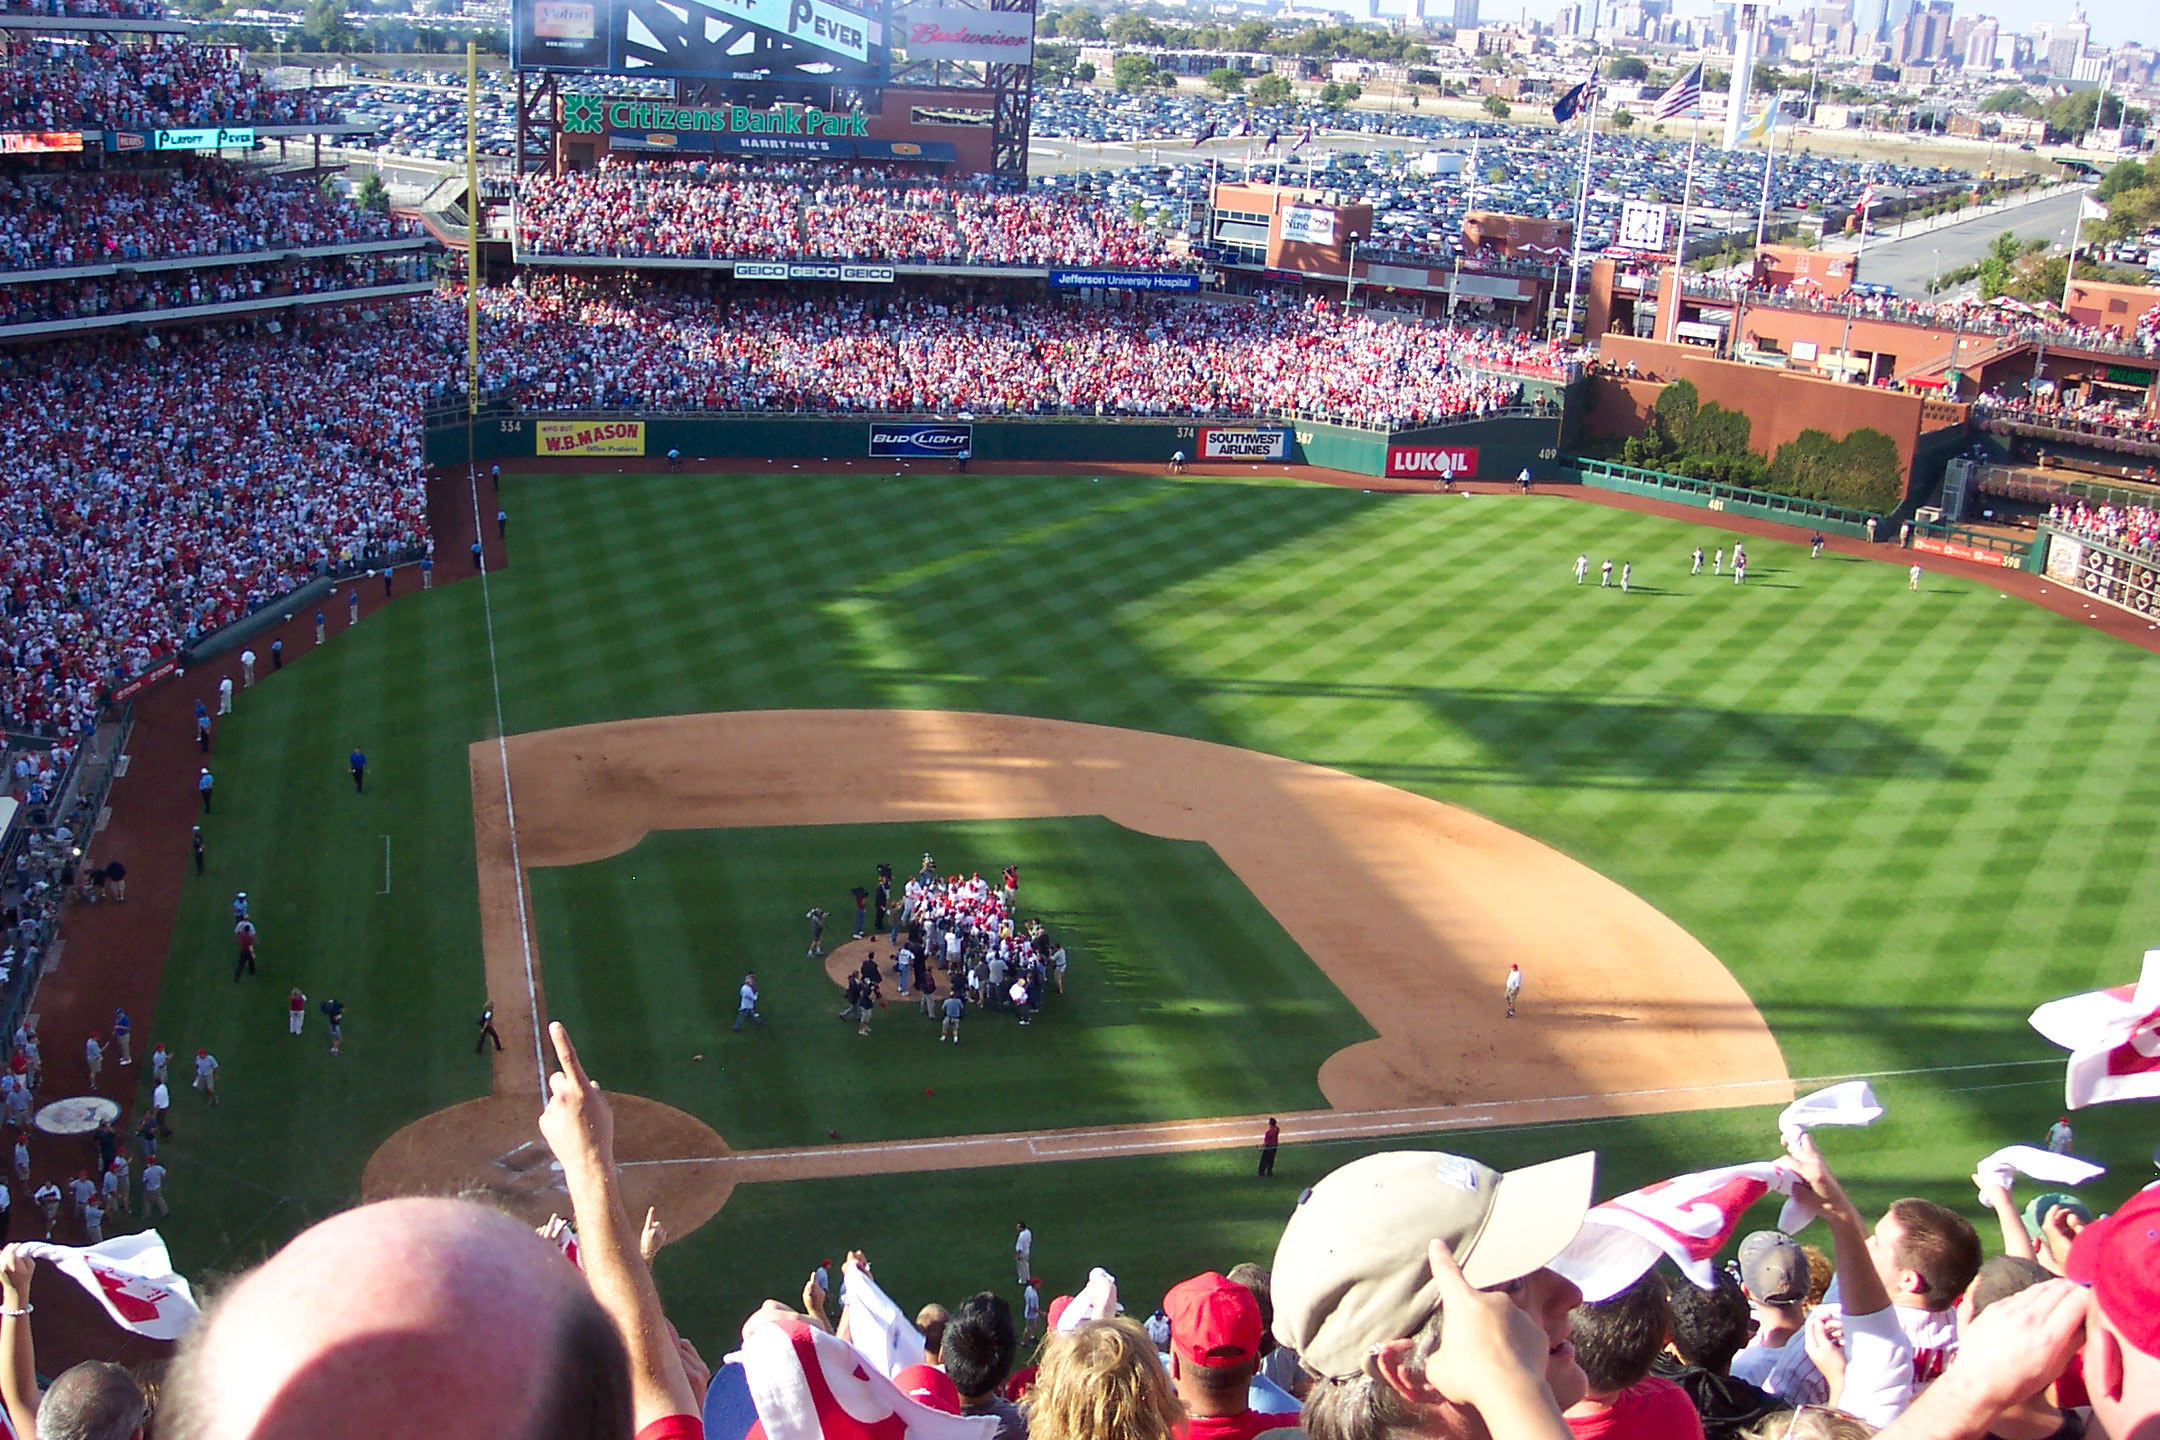 9 Thoughts From the Game (Now w/ Video) -- Phils Win 6-1 NL East Champions